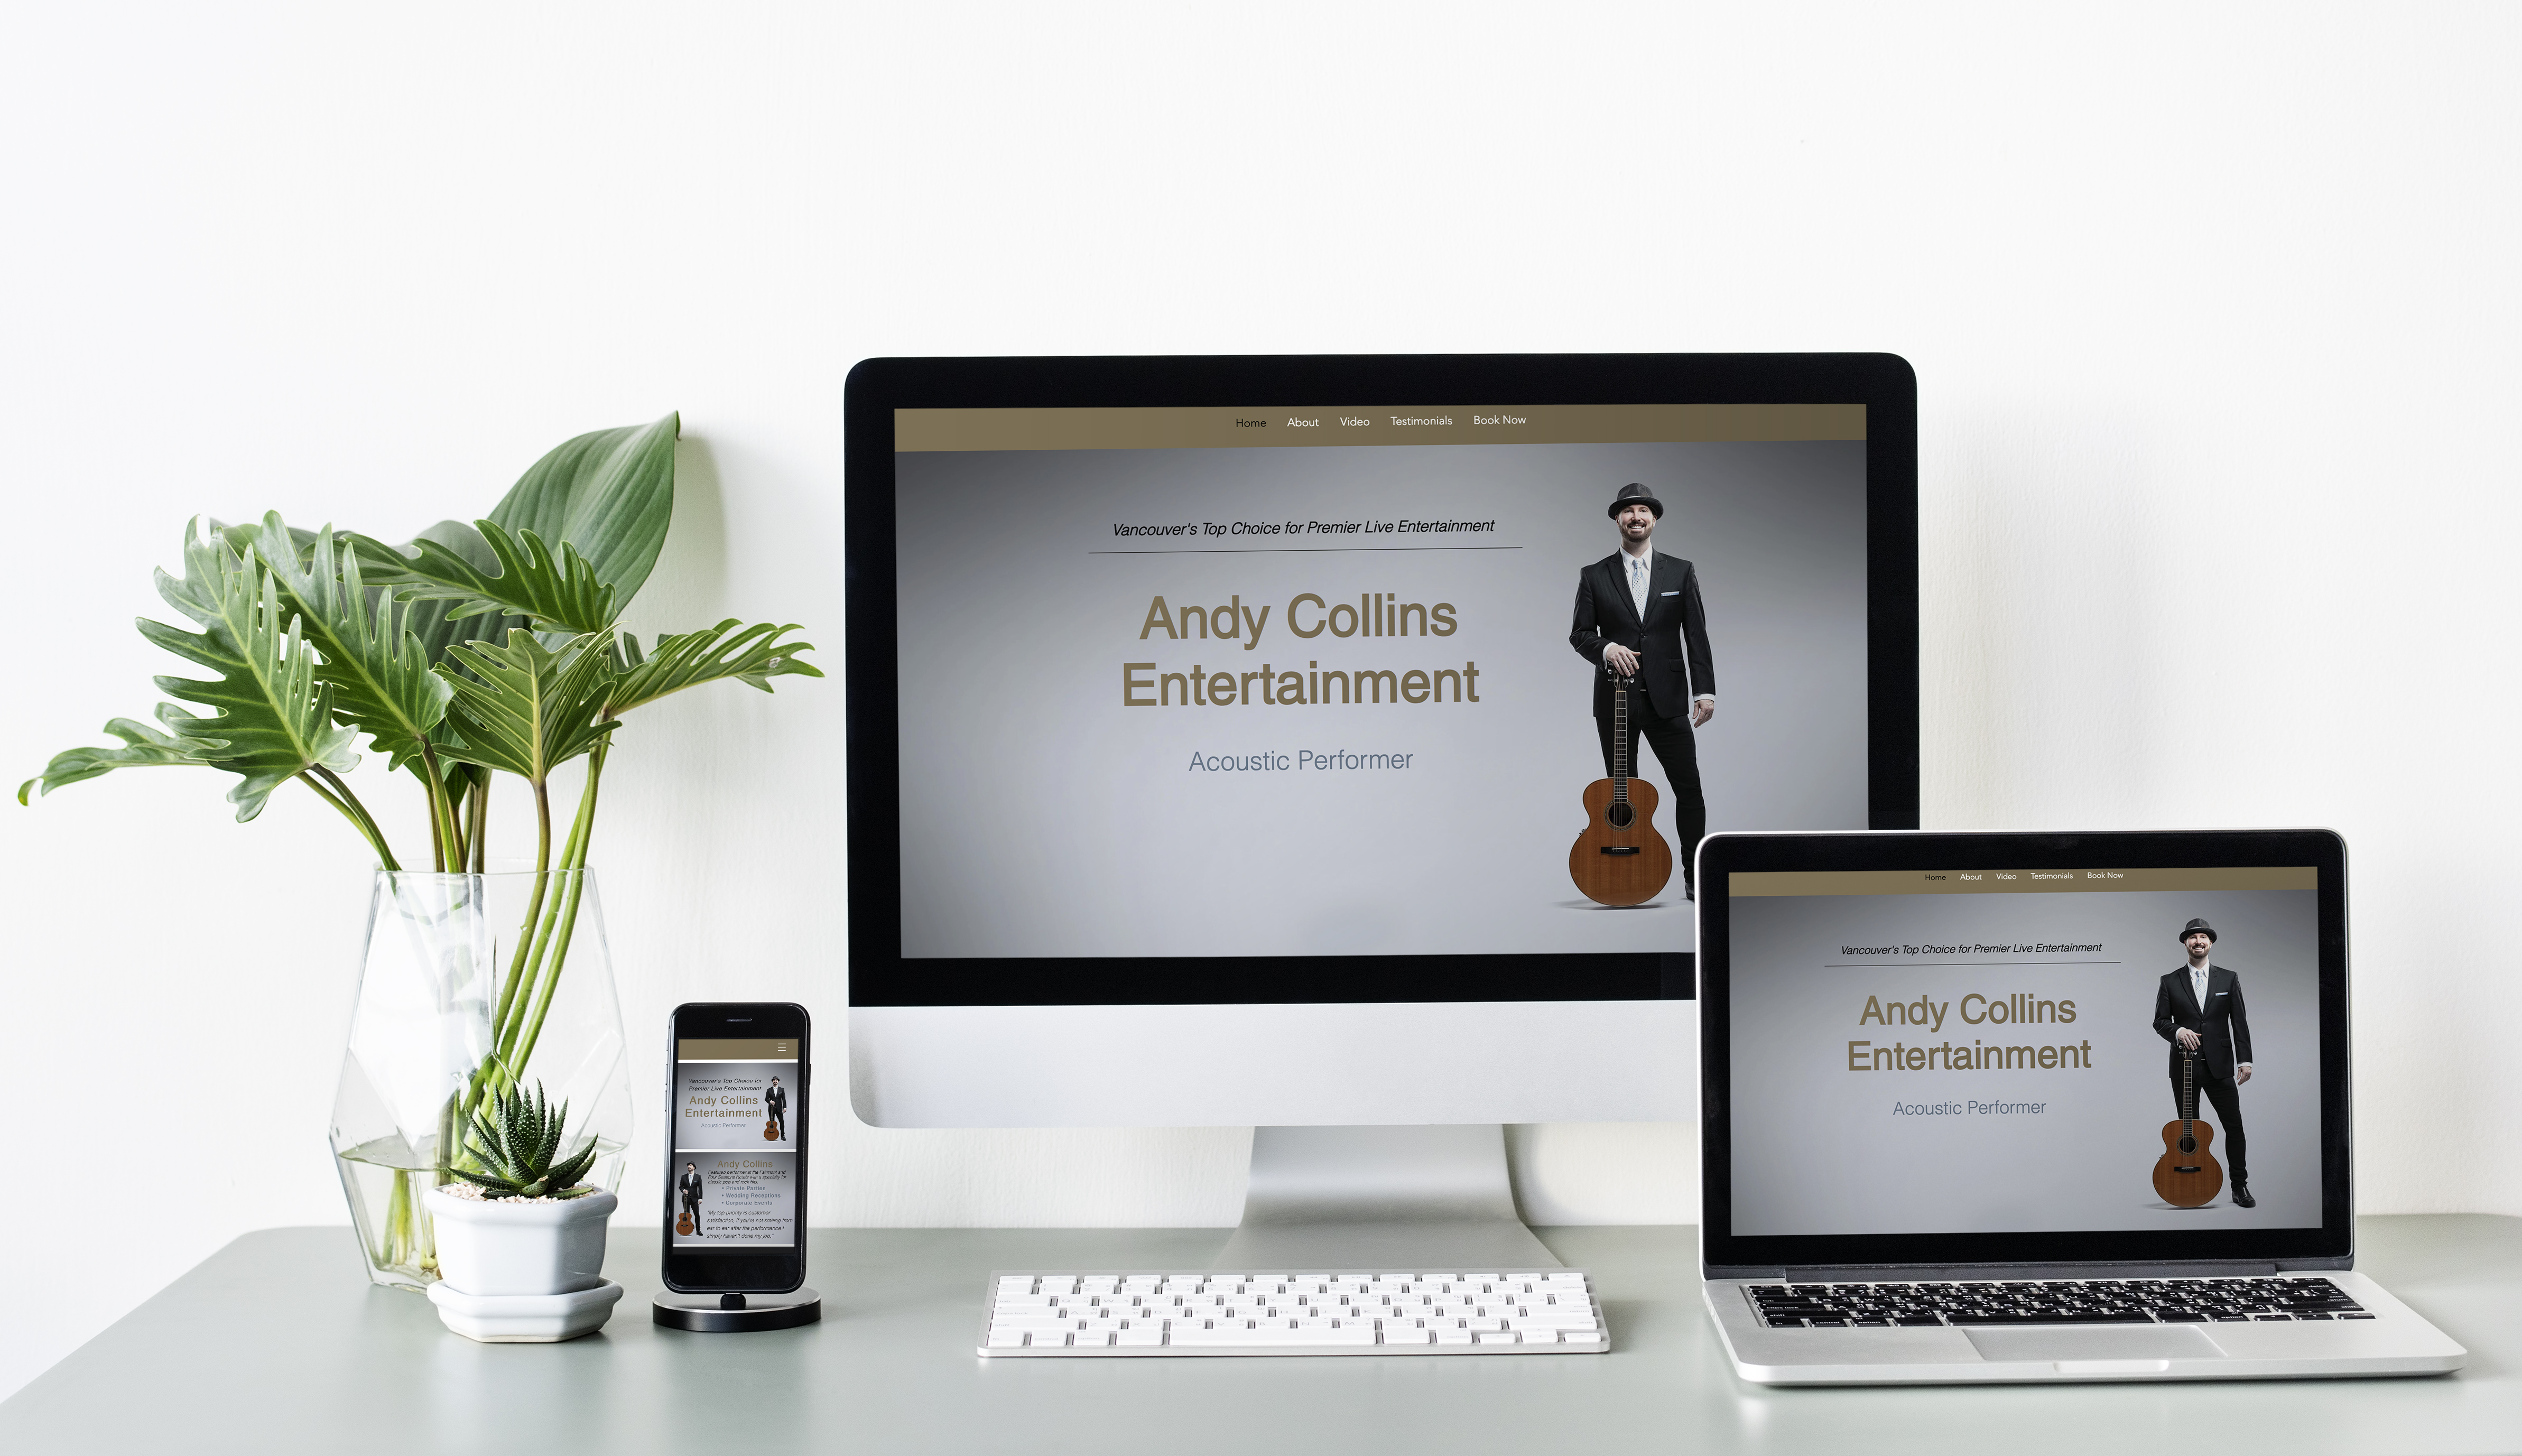 Andy Collins Entertainment